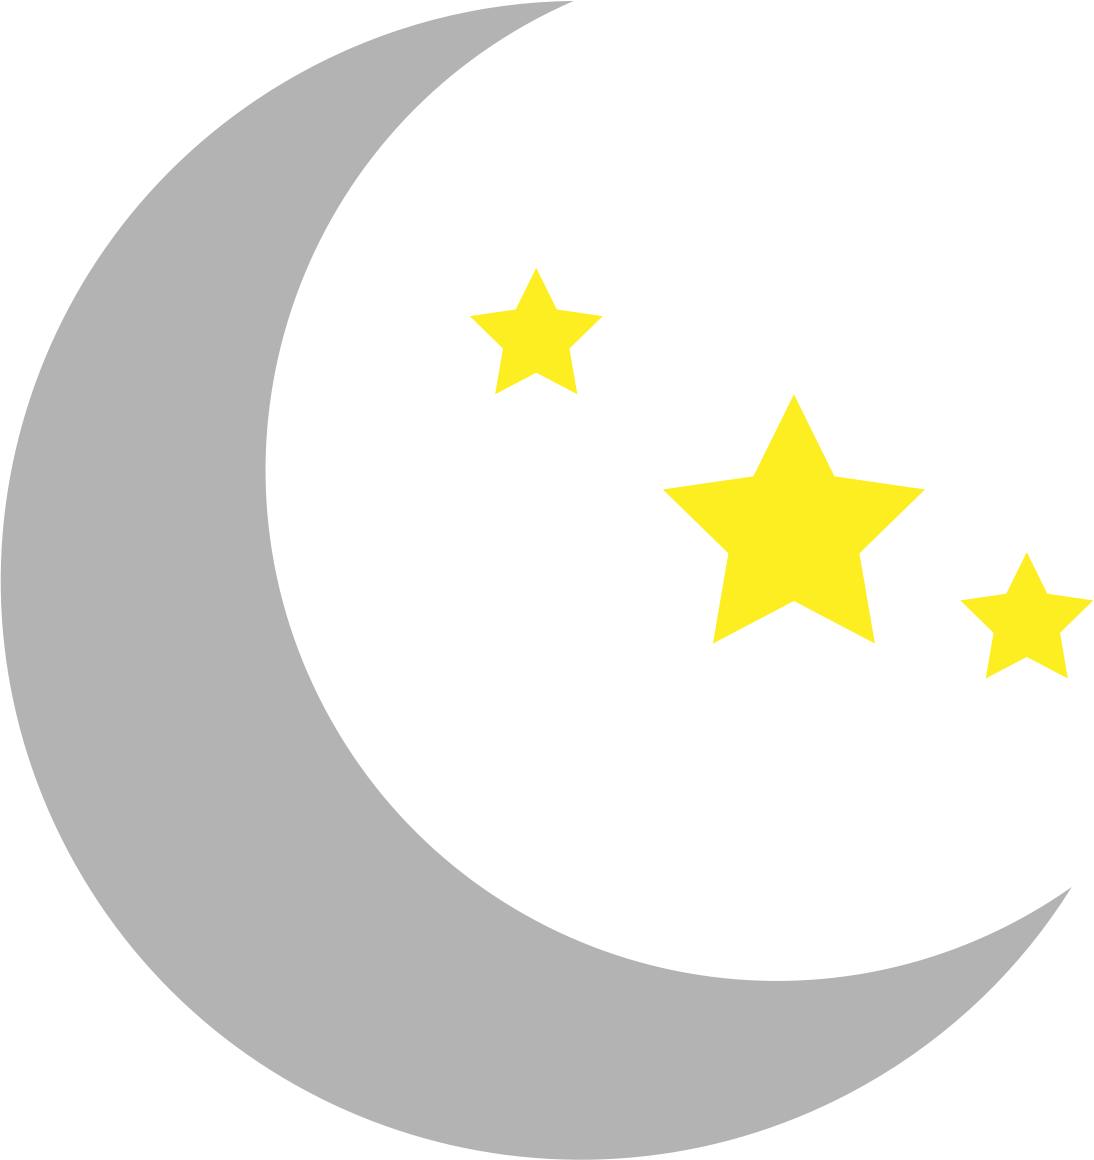 moon and stars clipart simple